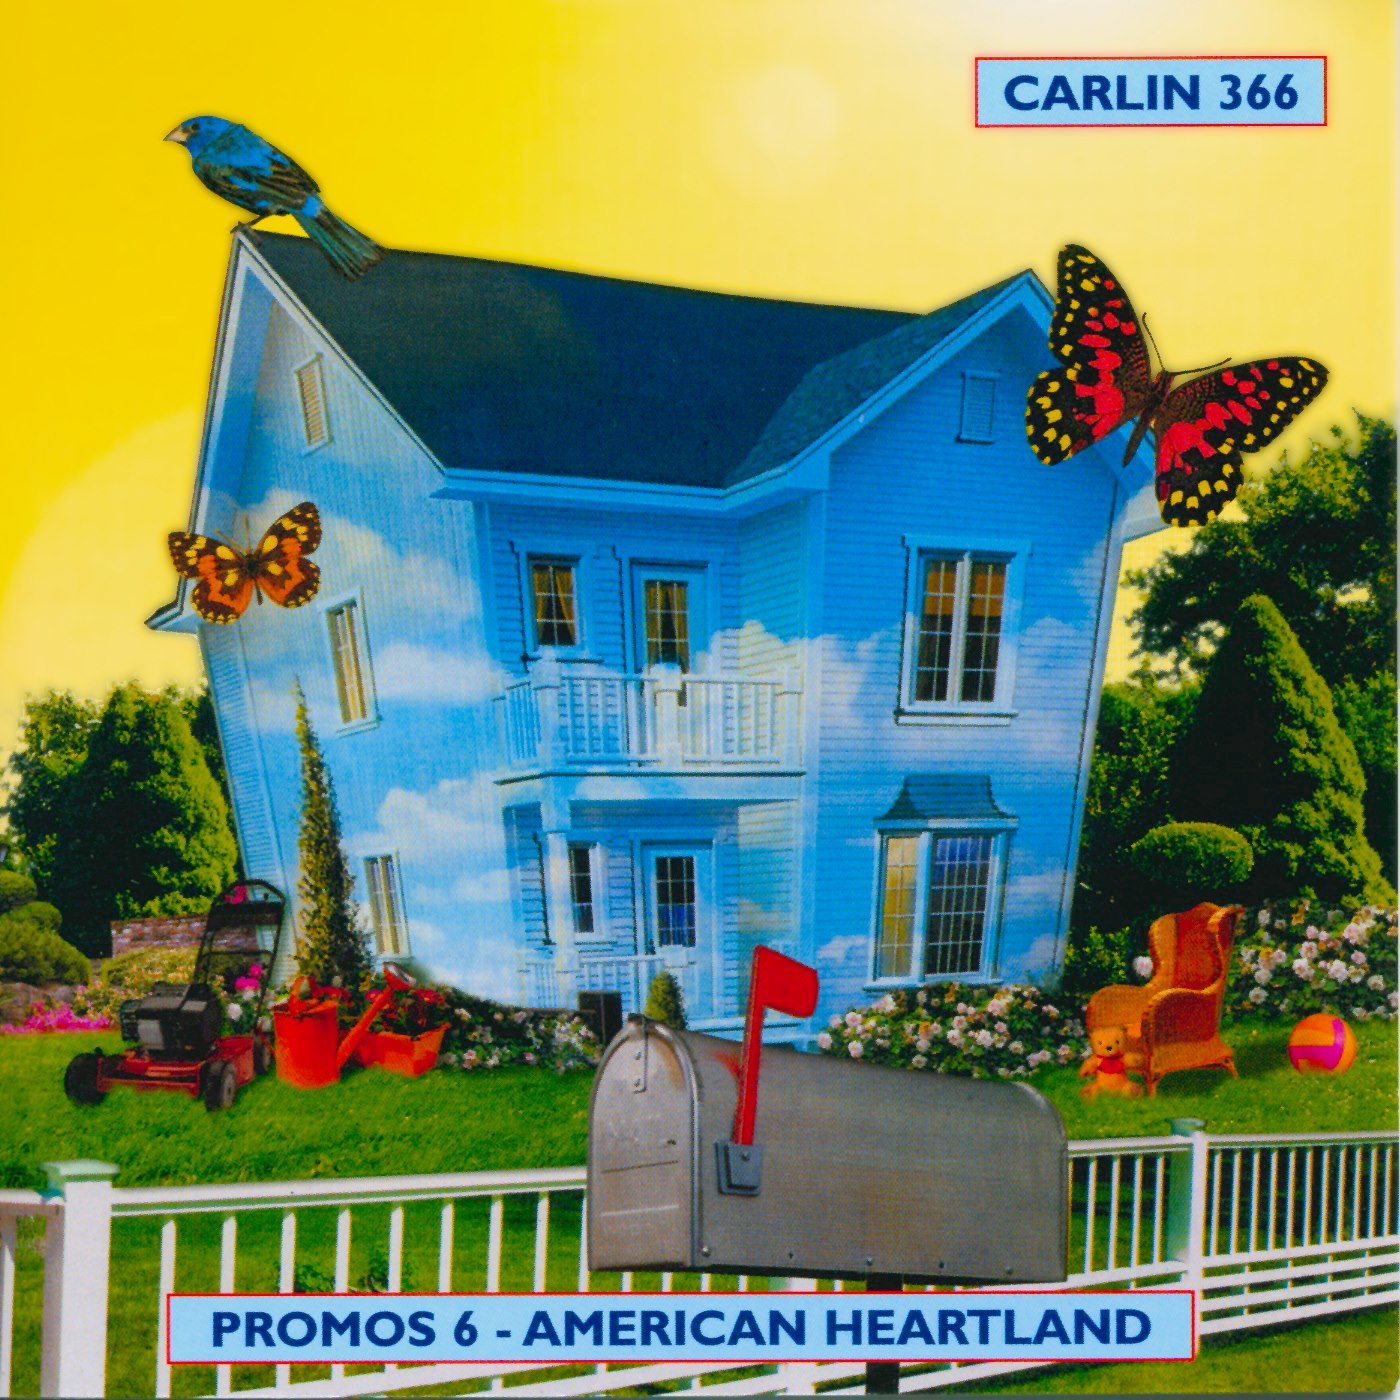 Artist:  Leon Hunt & Josh Clark   Title:  American Heartland   Label:  Warner Chappell   Credit:  Composer, Co-Producer, Recording, Mixing, Mastering   Year:  2005